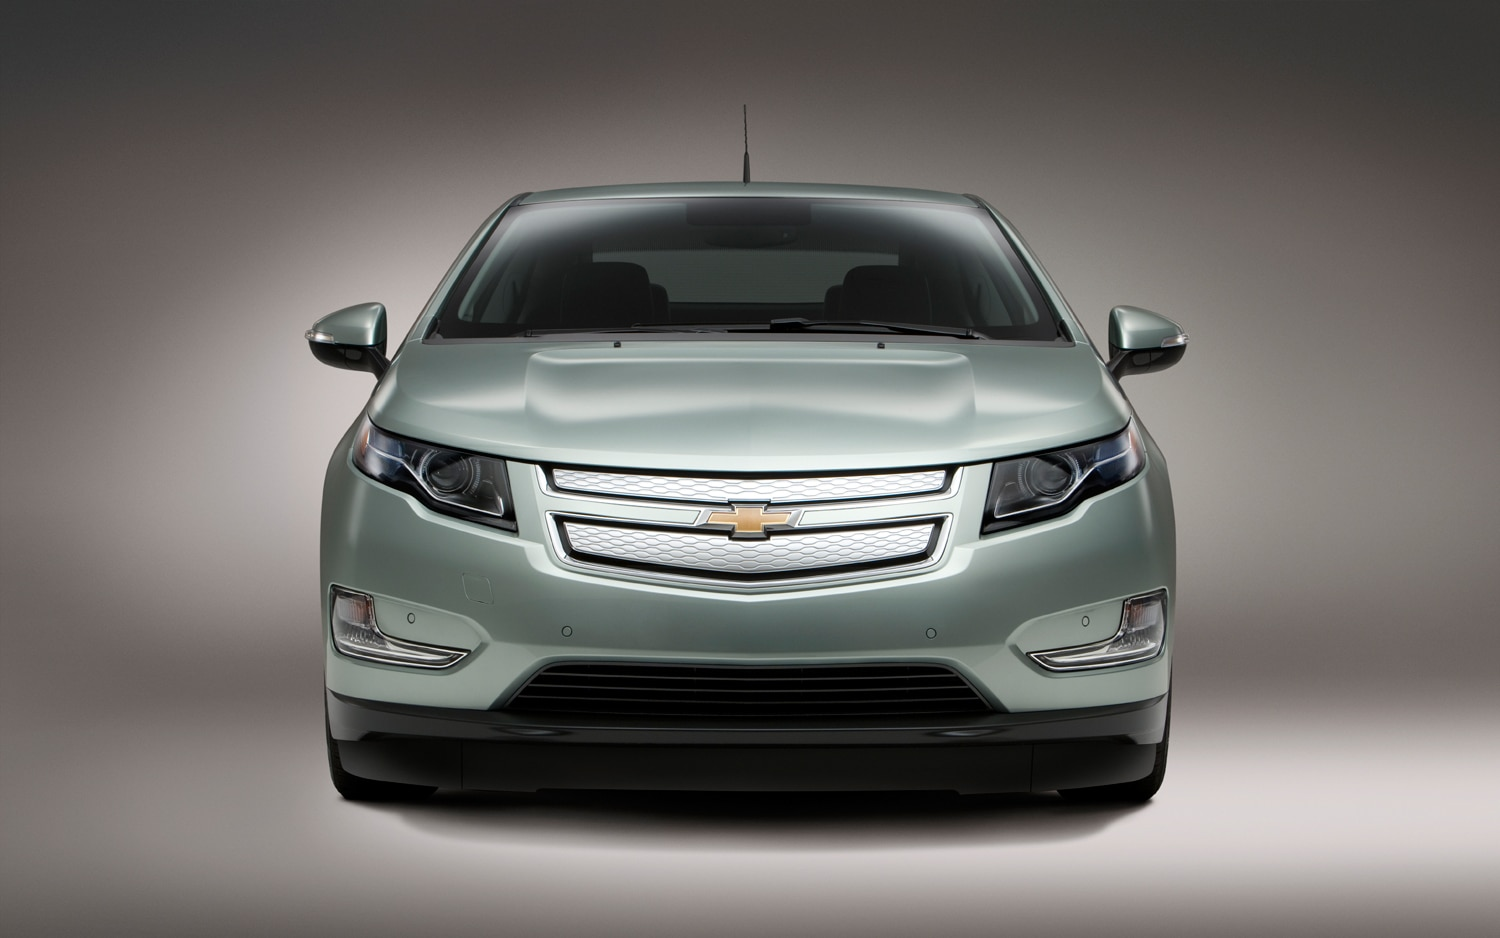 2013 chevrolet volt now rated at 38 miles of electric range 98 mpge by epa. Black Bedroom Furniture Sets. Home Design Ideas